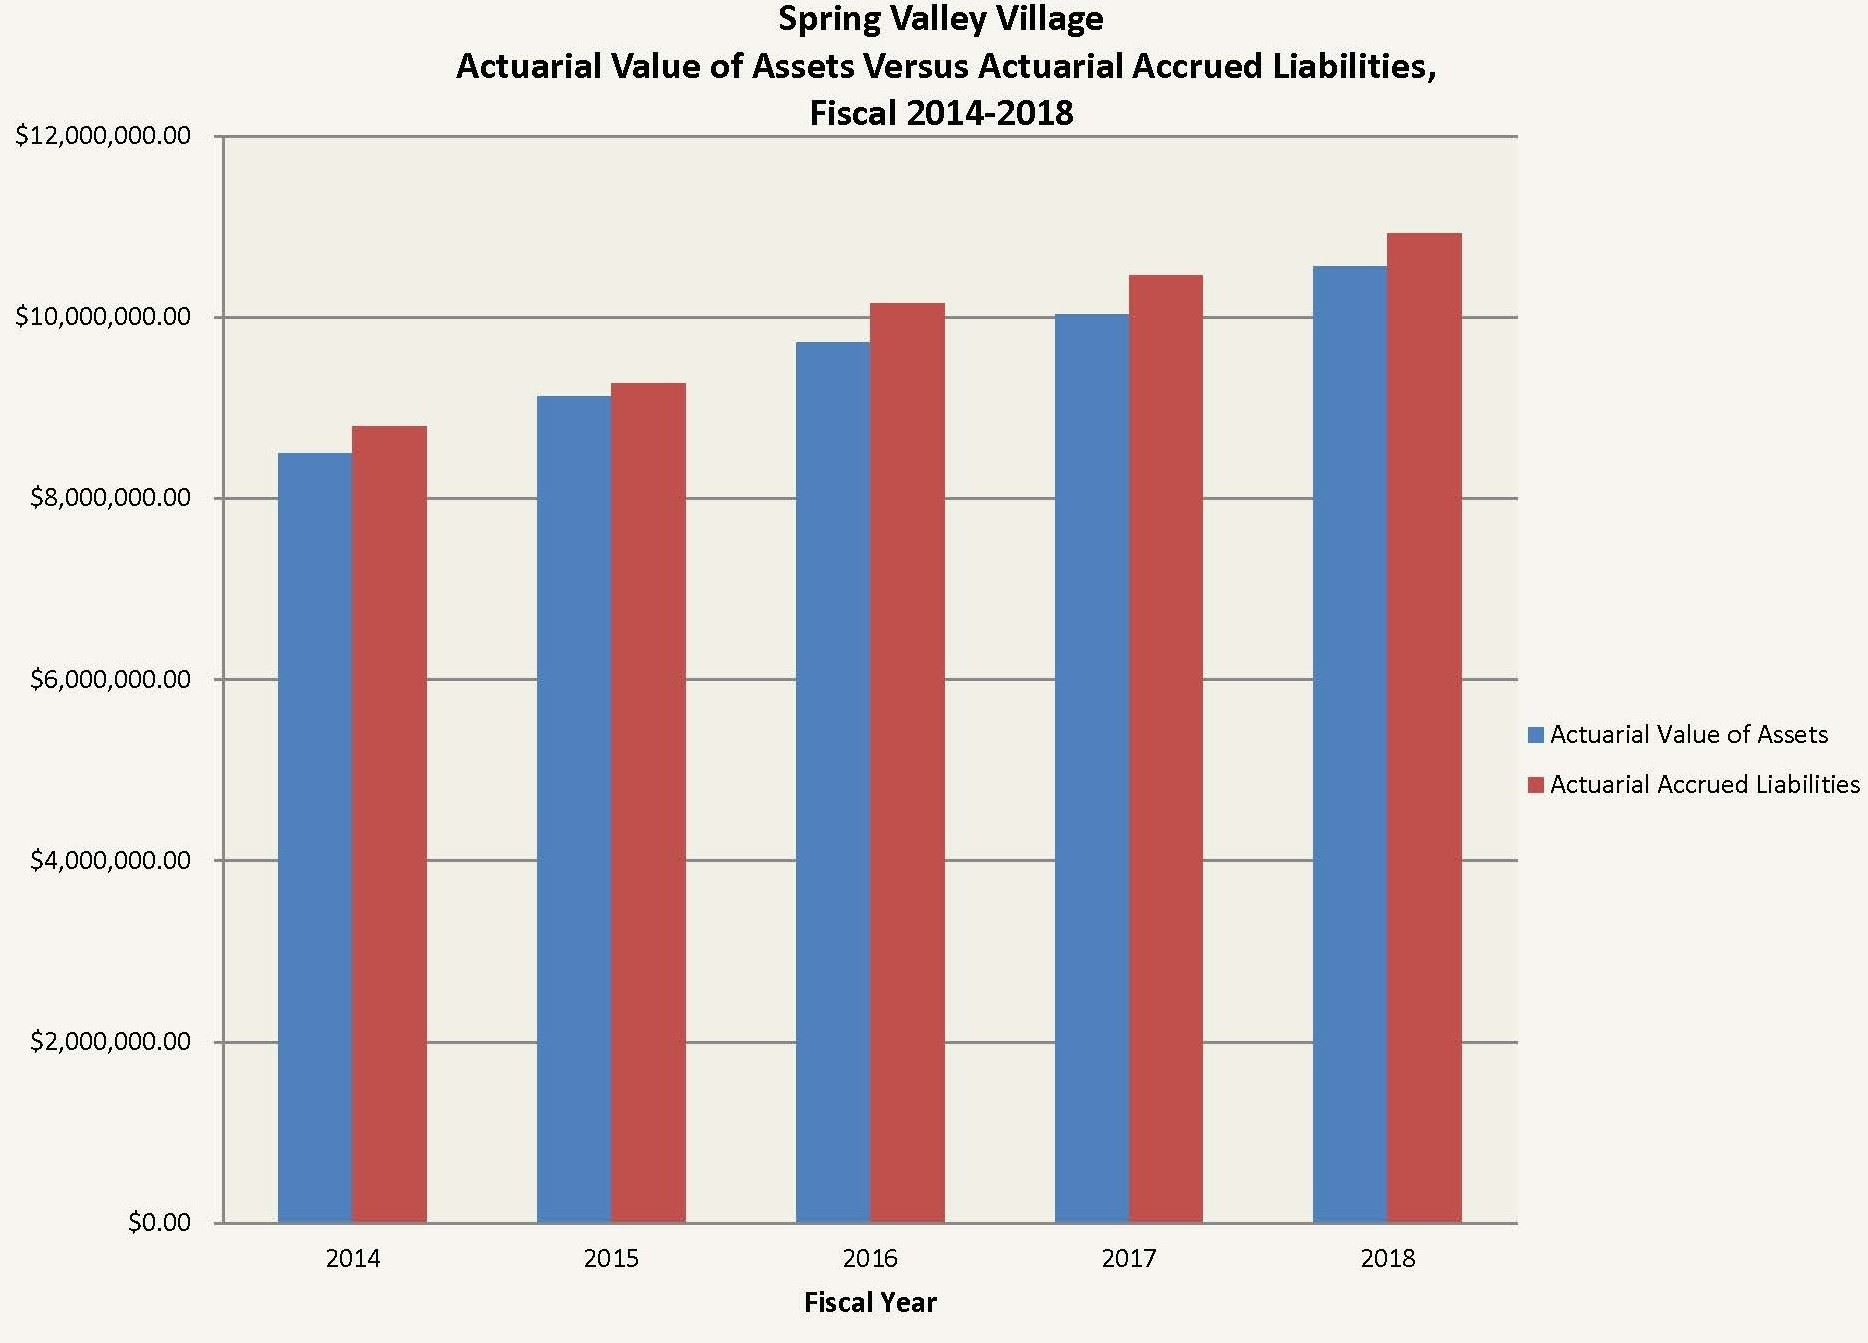 City of Spring Valley Village Pension- Actuarial-downloadable (1)